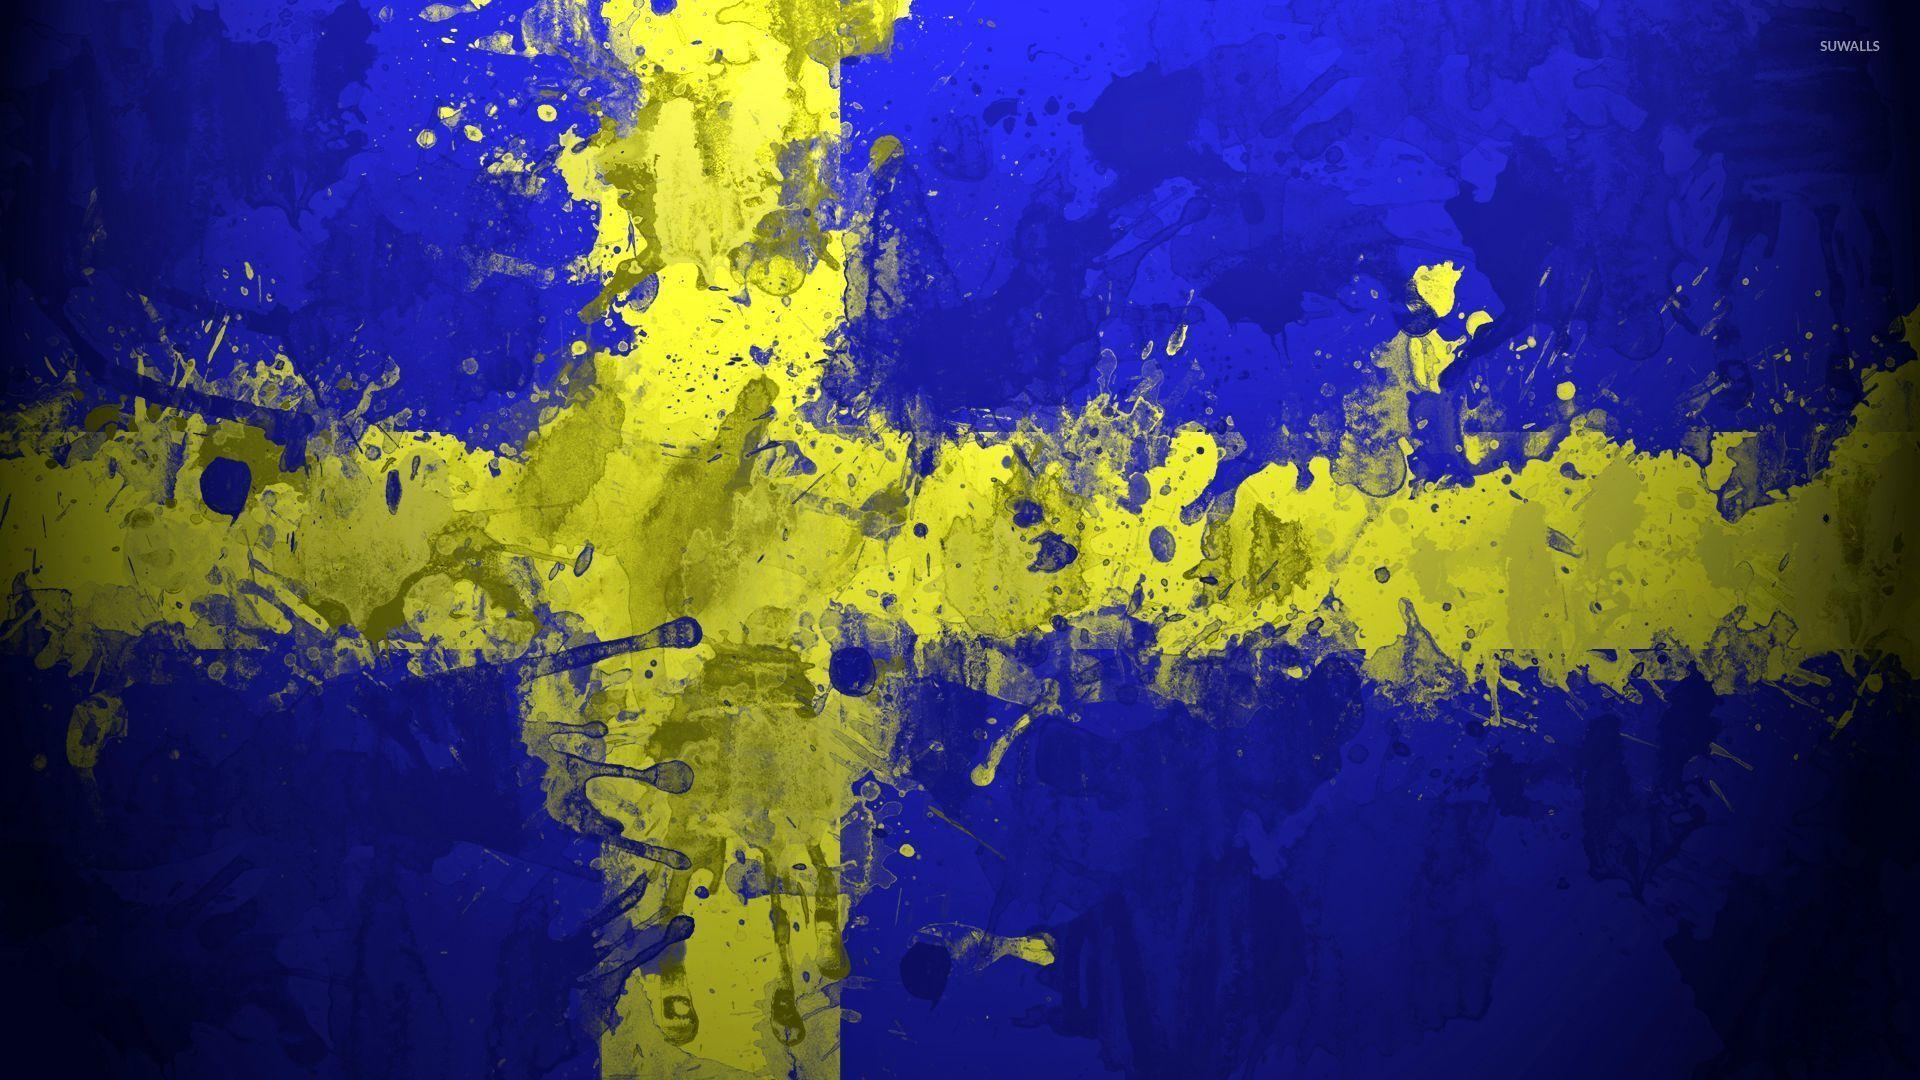 Paint drops on the flag of Sweden wallpapers